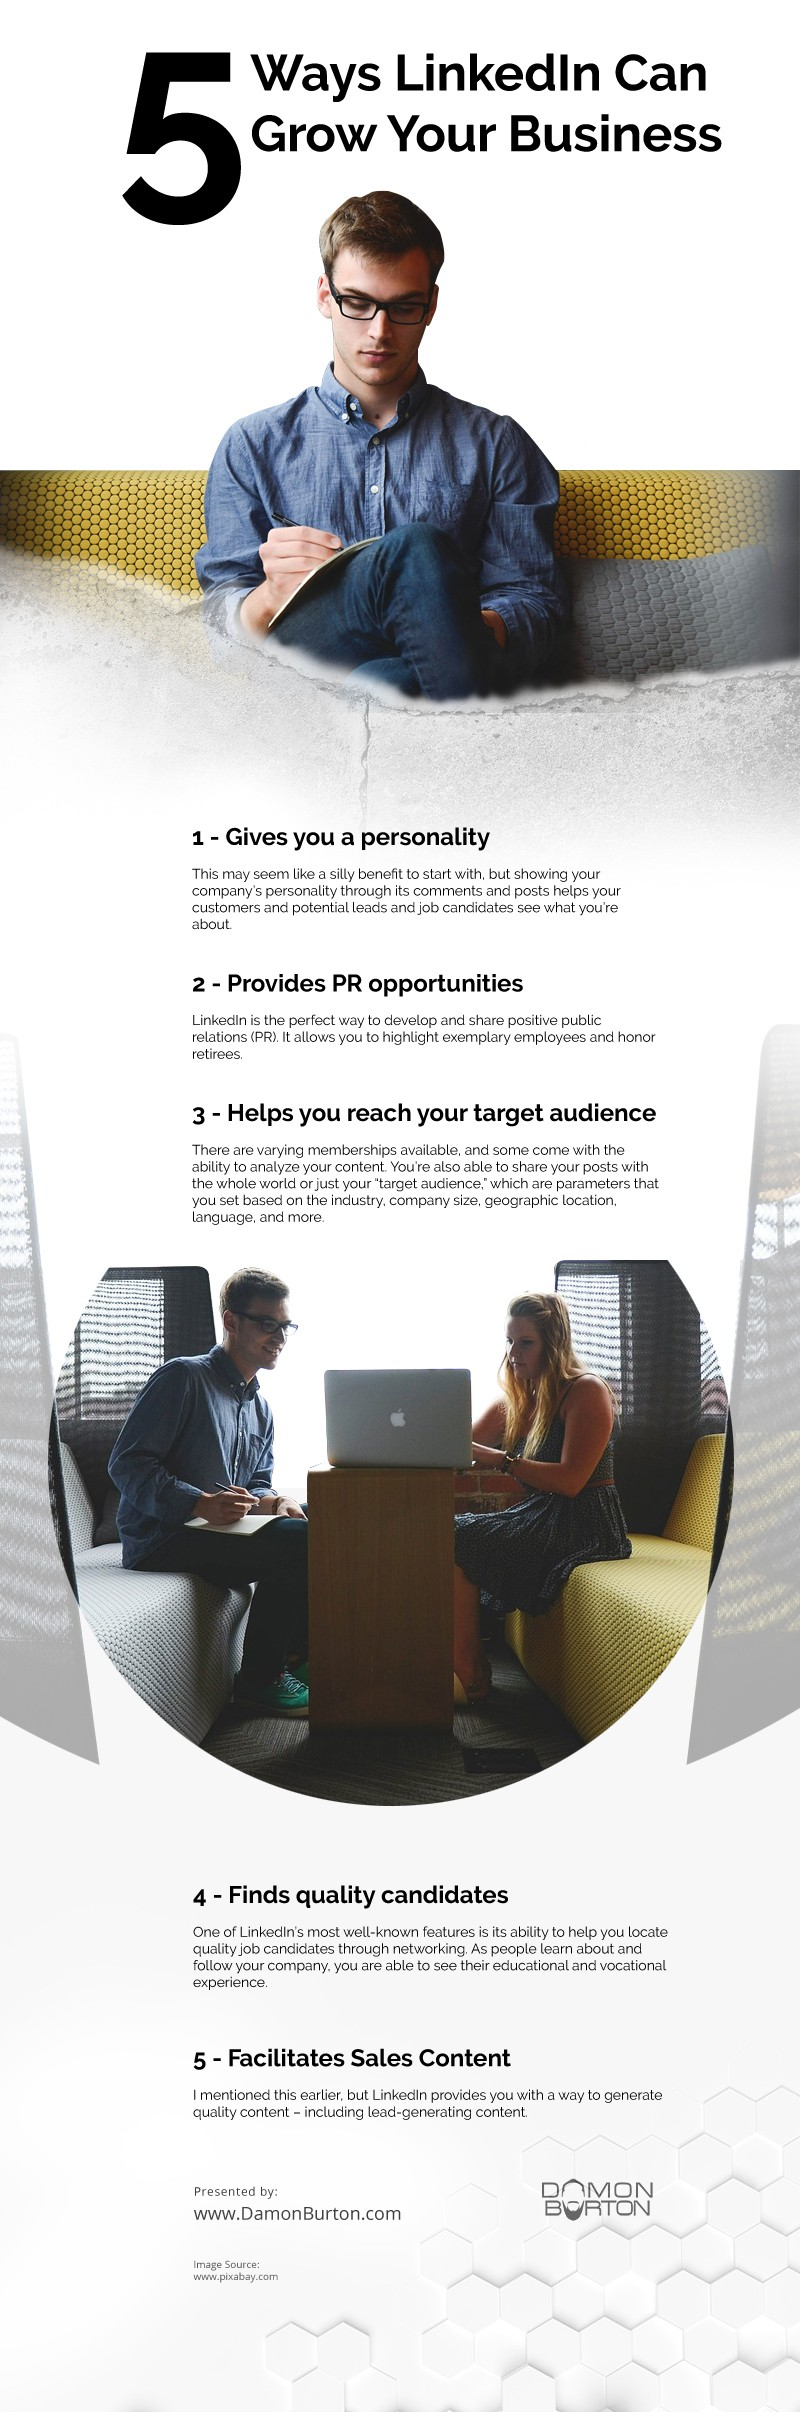 5 Ways LinkedIn Can Grow Your Business [infographic]